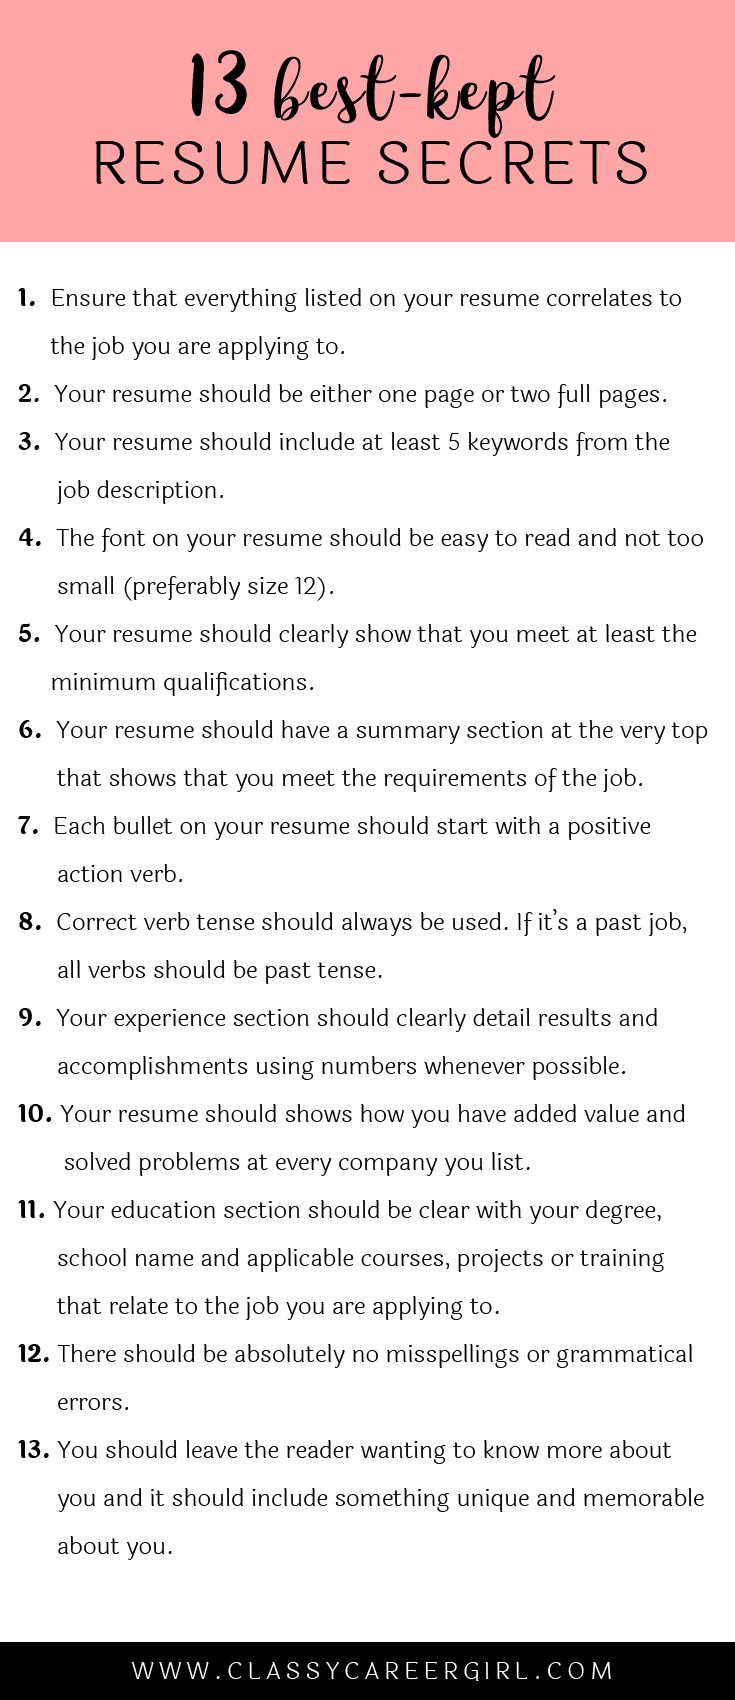 Picnictoimpeachus  Scenic  Ideas About Resume On Pinterest  Cv Format Resume Cv And  With Engaging Some Hiring Managers Will Toss Your Resume Out If You Dont Know These  With Cute Teach For America Resume Also Help Build A Resume In Addition Free Resume Templates In Word And Example Federal Resume As Well As Resumes By Marissa Additionally Training And Development Resume From Pinterestcom With Picnictoimpeachus  Engaging  Ideas About Resume On Pinterest  Cv Format Resume Cv And  With Cute Some Hiring Managers Will Toss Your Resume Out If You Dont Know These  And Scenic Teach For America Resume Also Help Build A Resume In Addition Free Resume Templates In Word From Pinterestcom